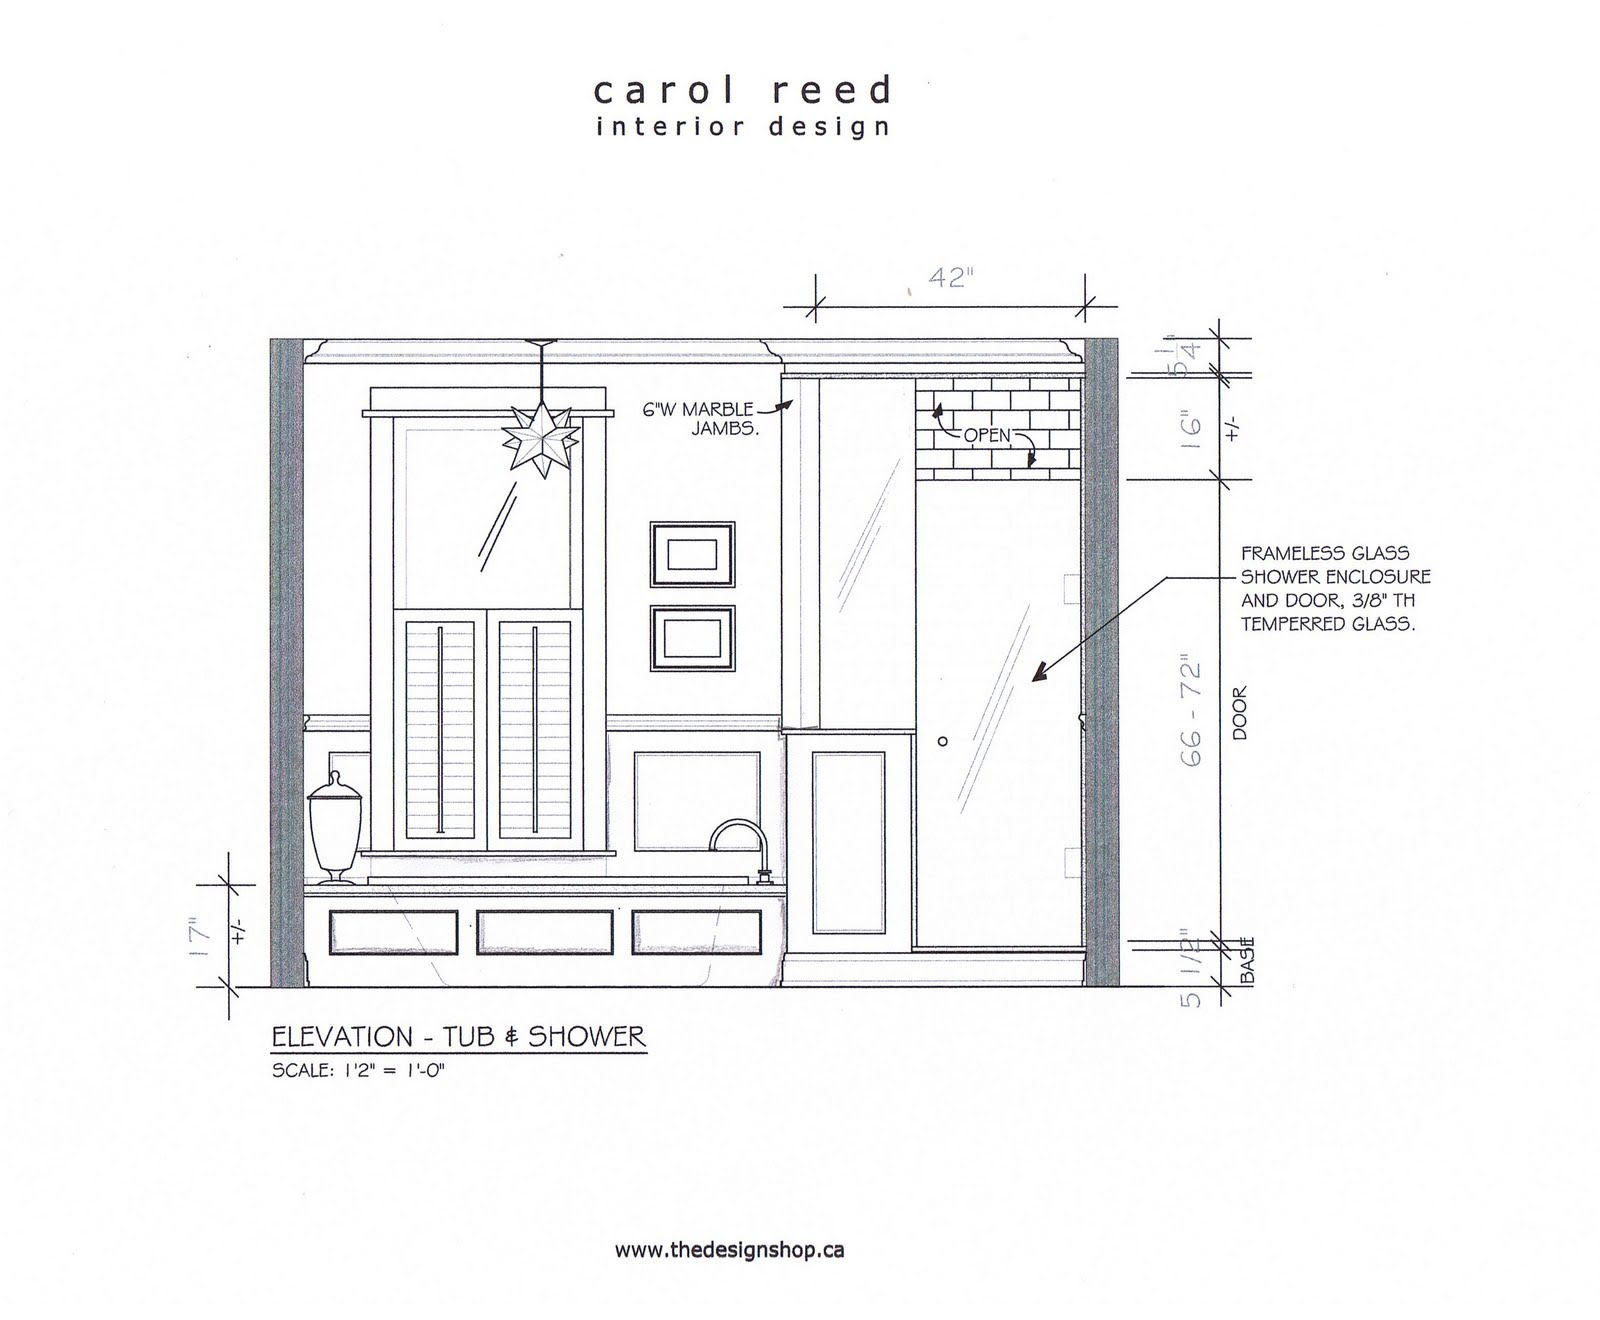 Toilet Elevation Plan : Creed before after e design bathroom project